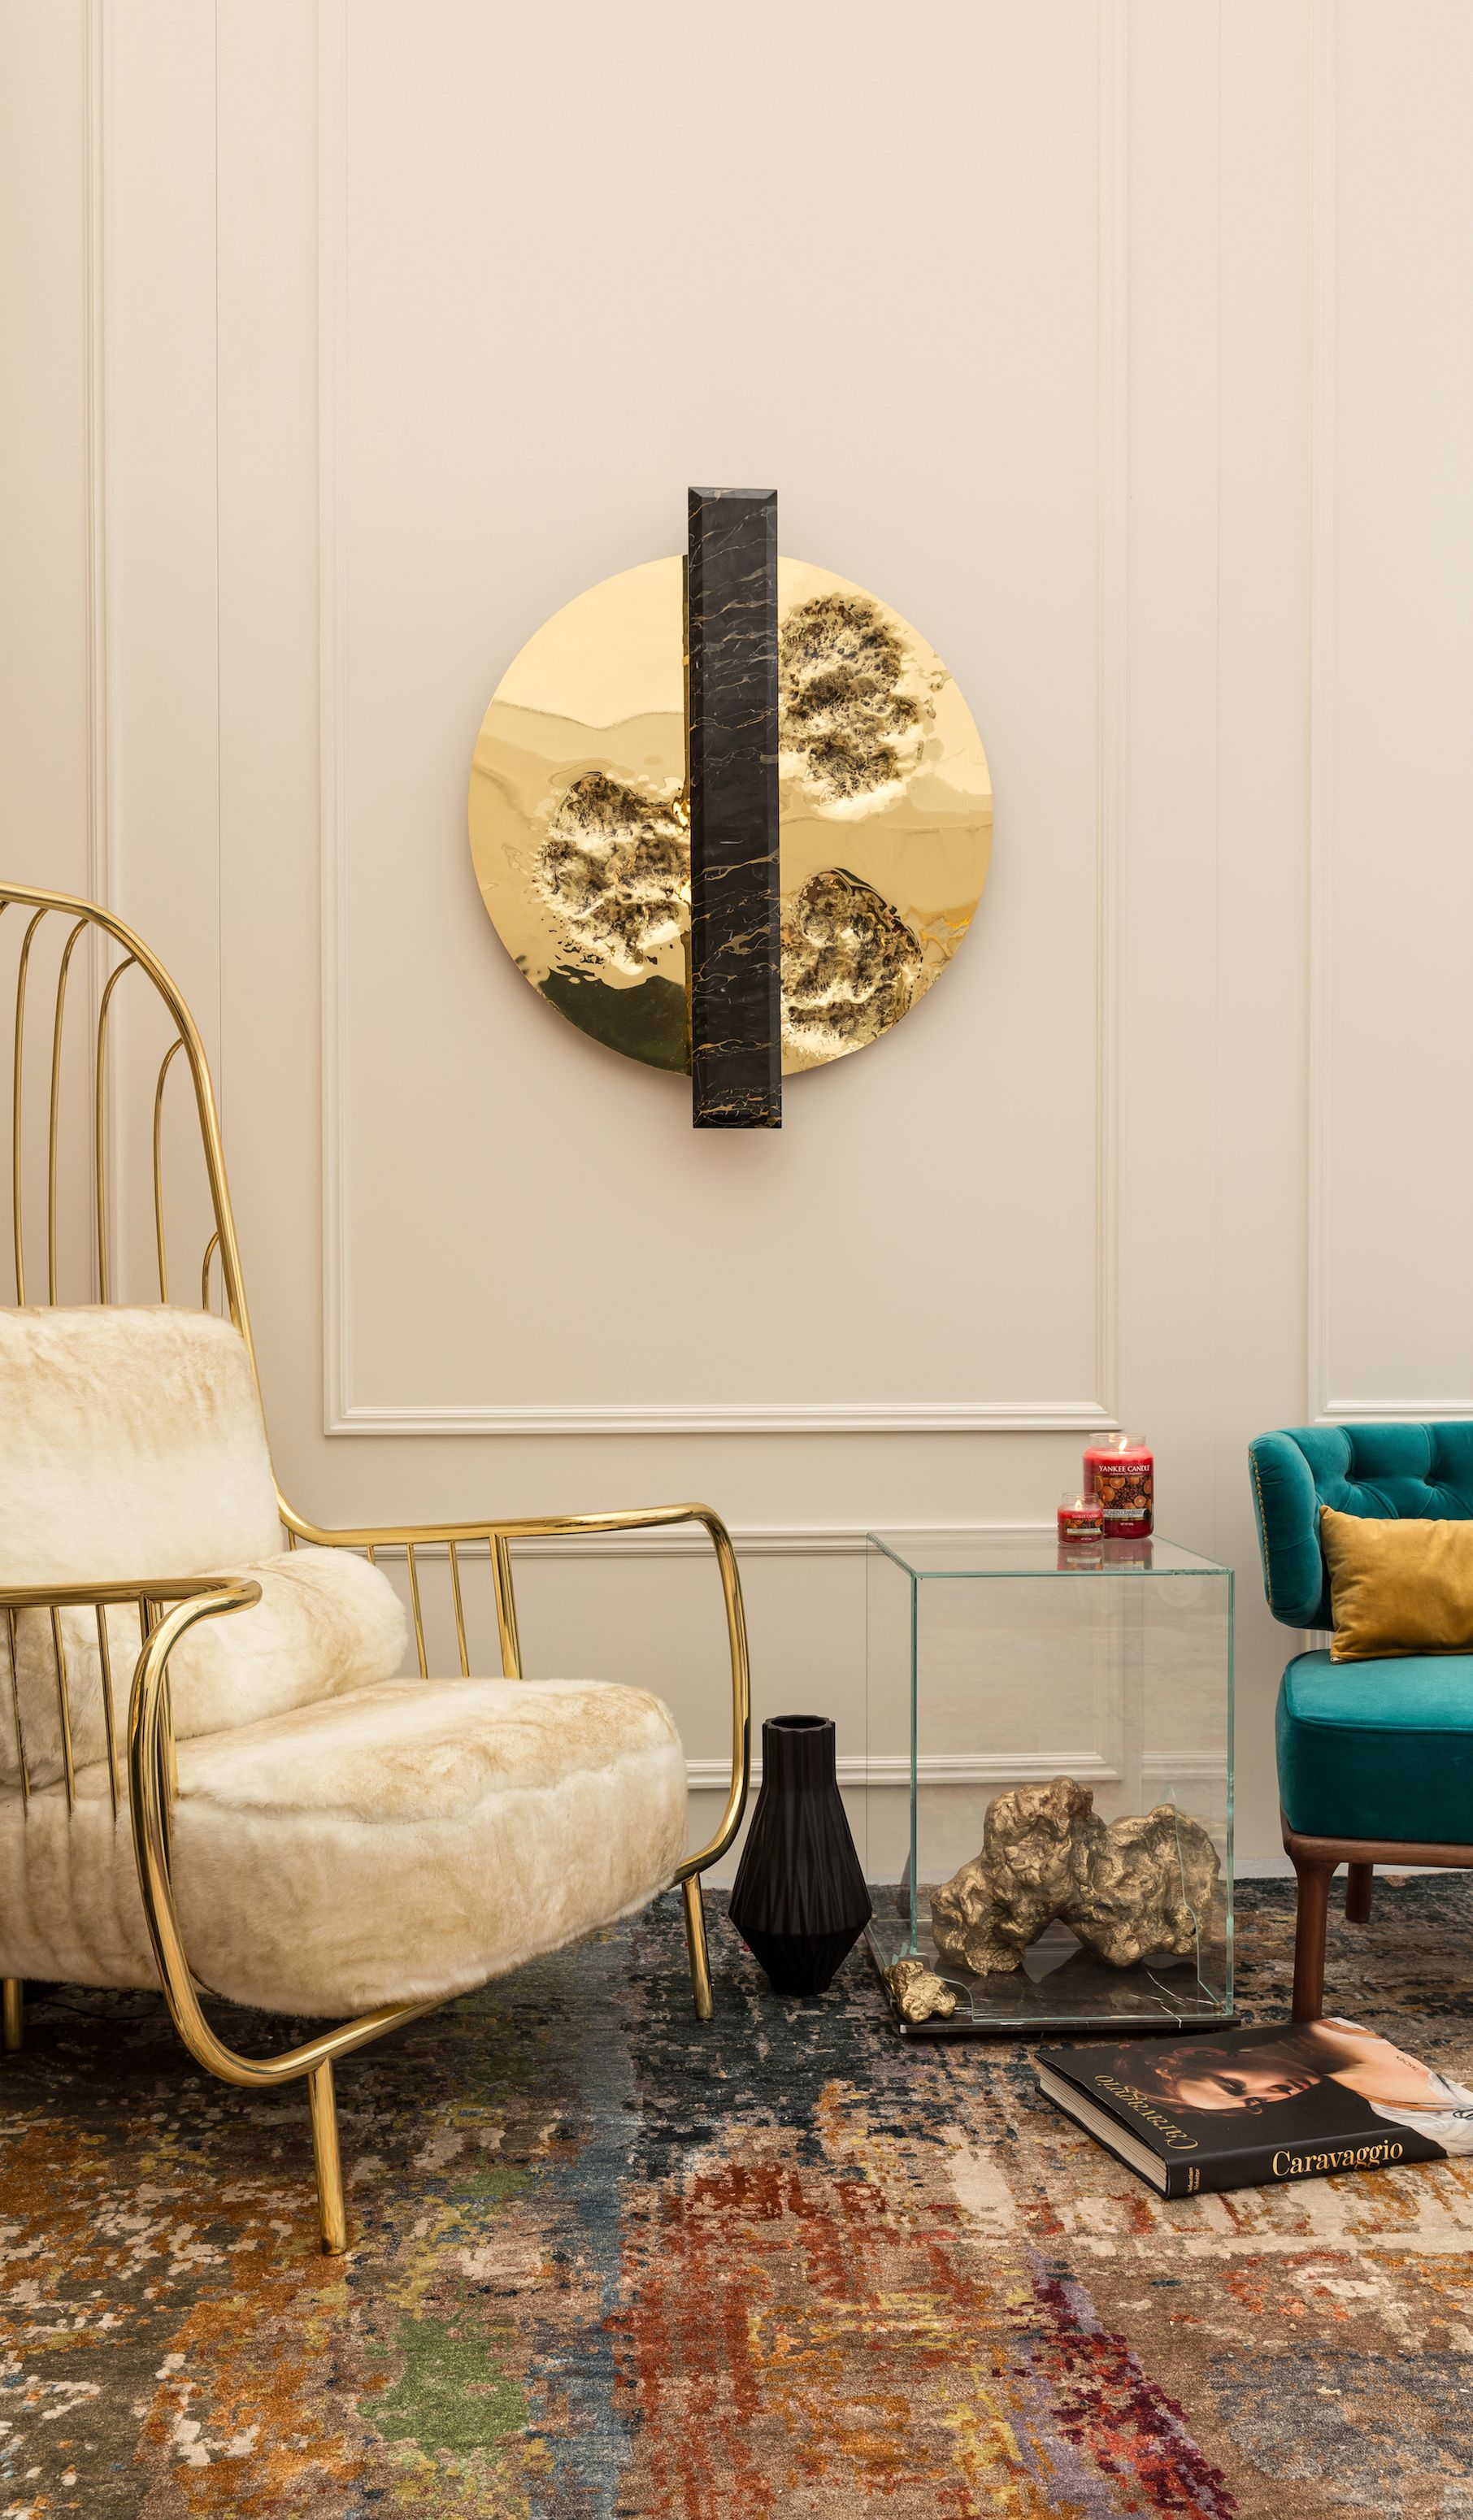 Bessa Design At Decorex Discover Unique Pieces Like The Ones In